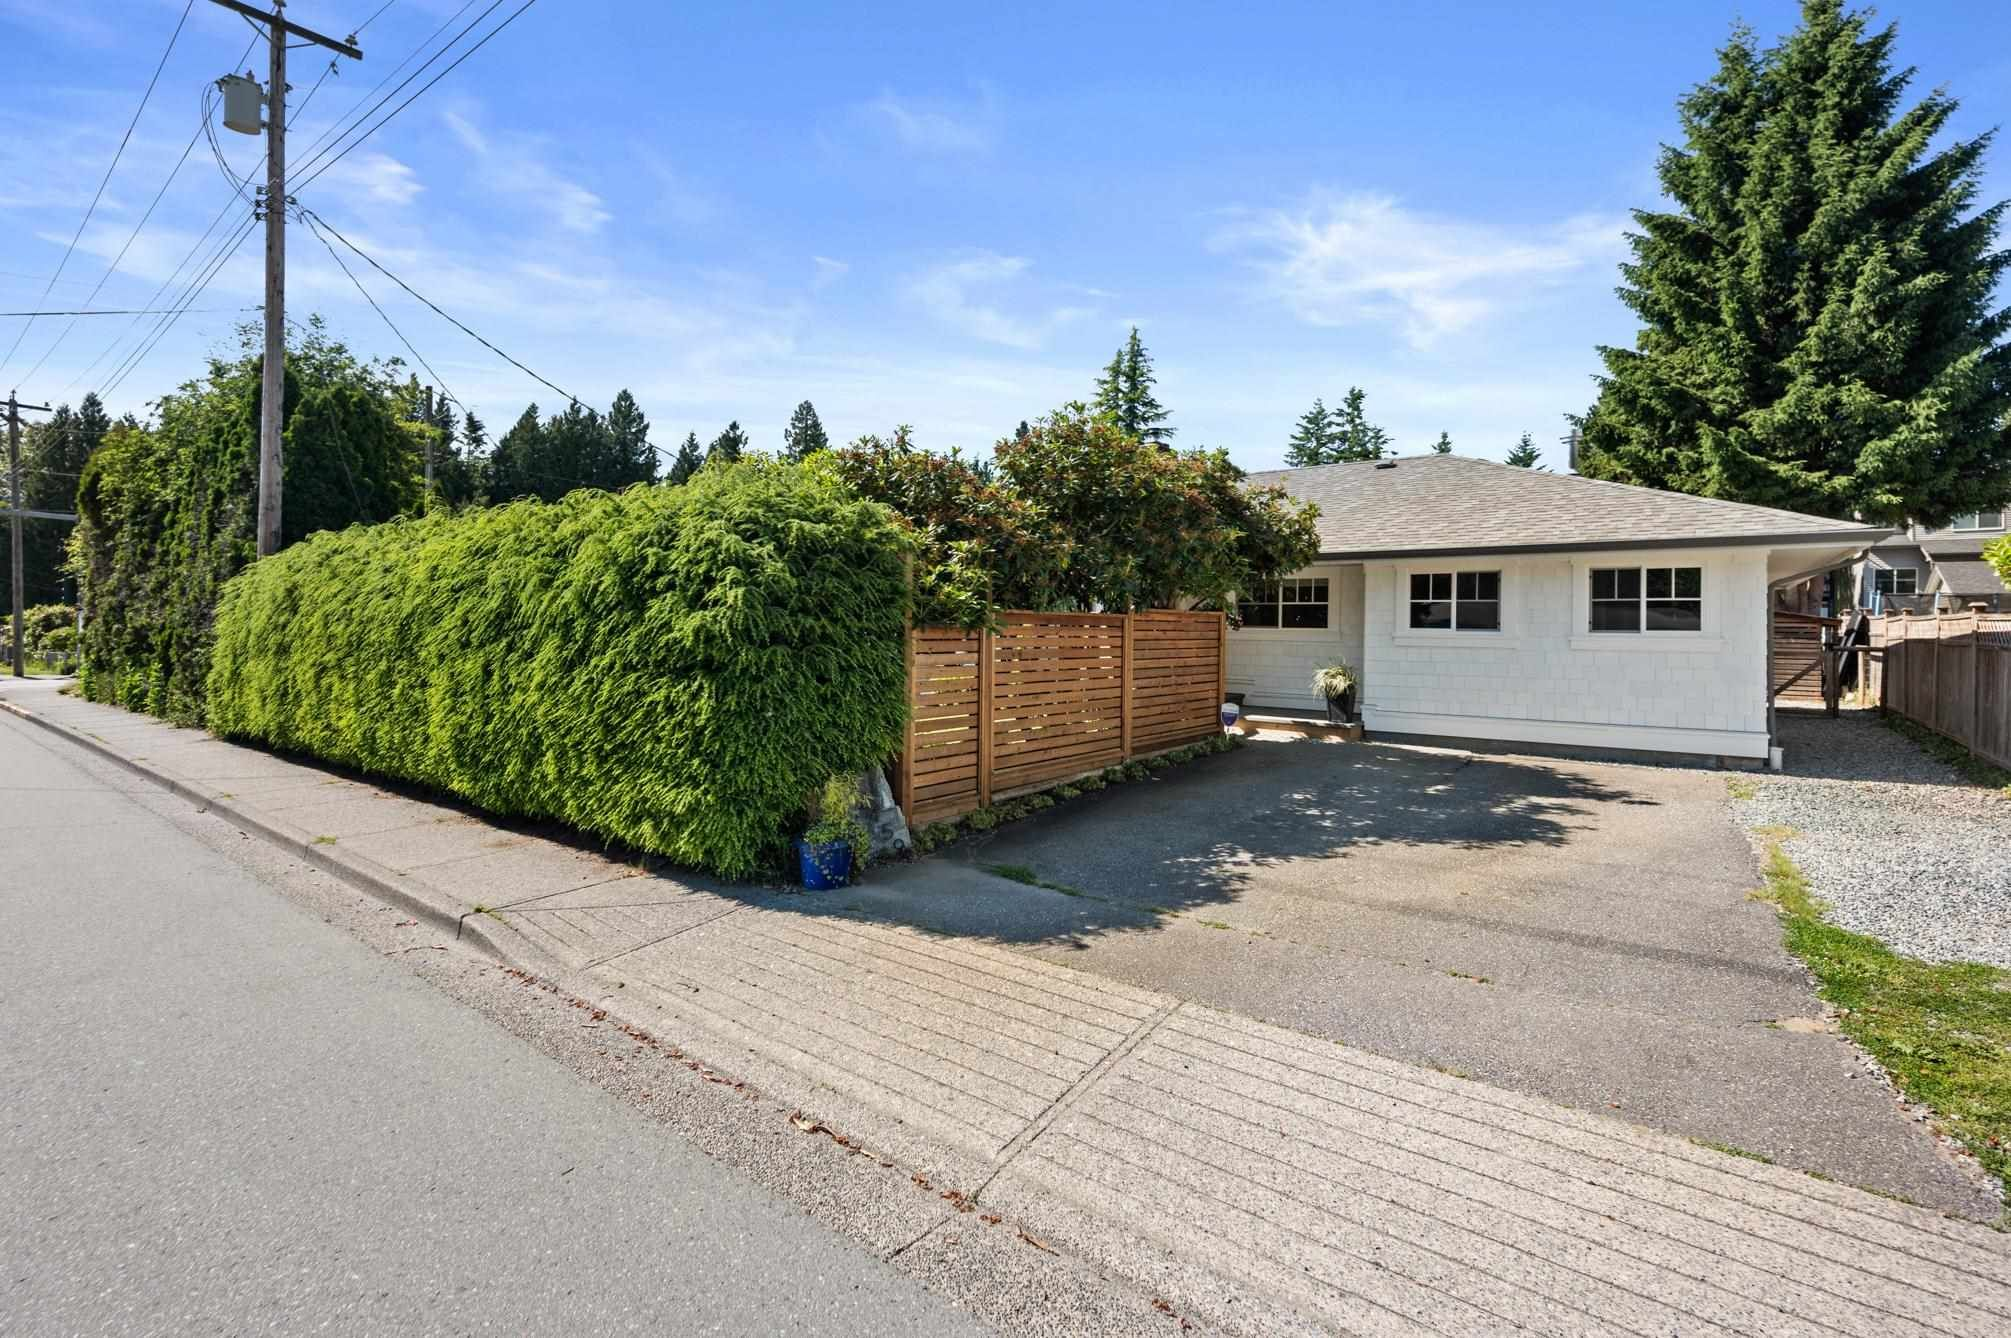 Photo 2: Photos: 32459 7TH Avenue in Mission: Mission BC House for sale : MLS®# R2595099